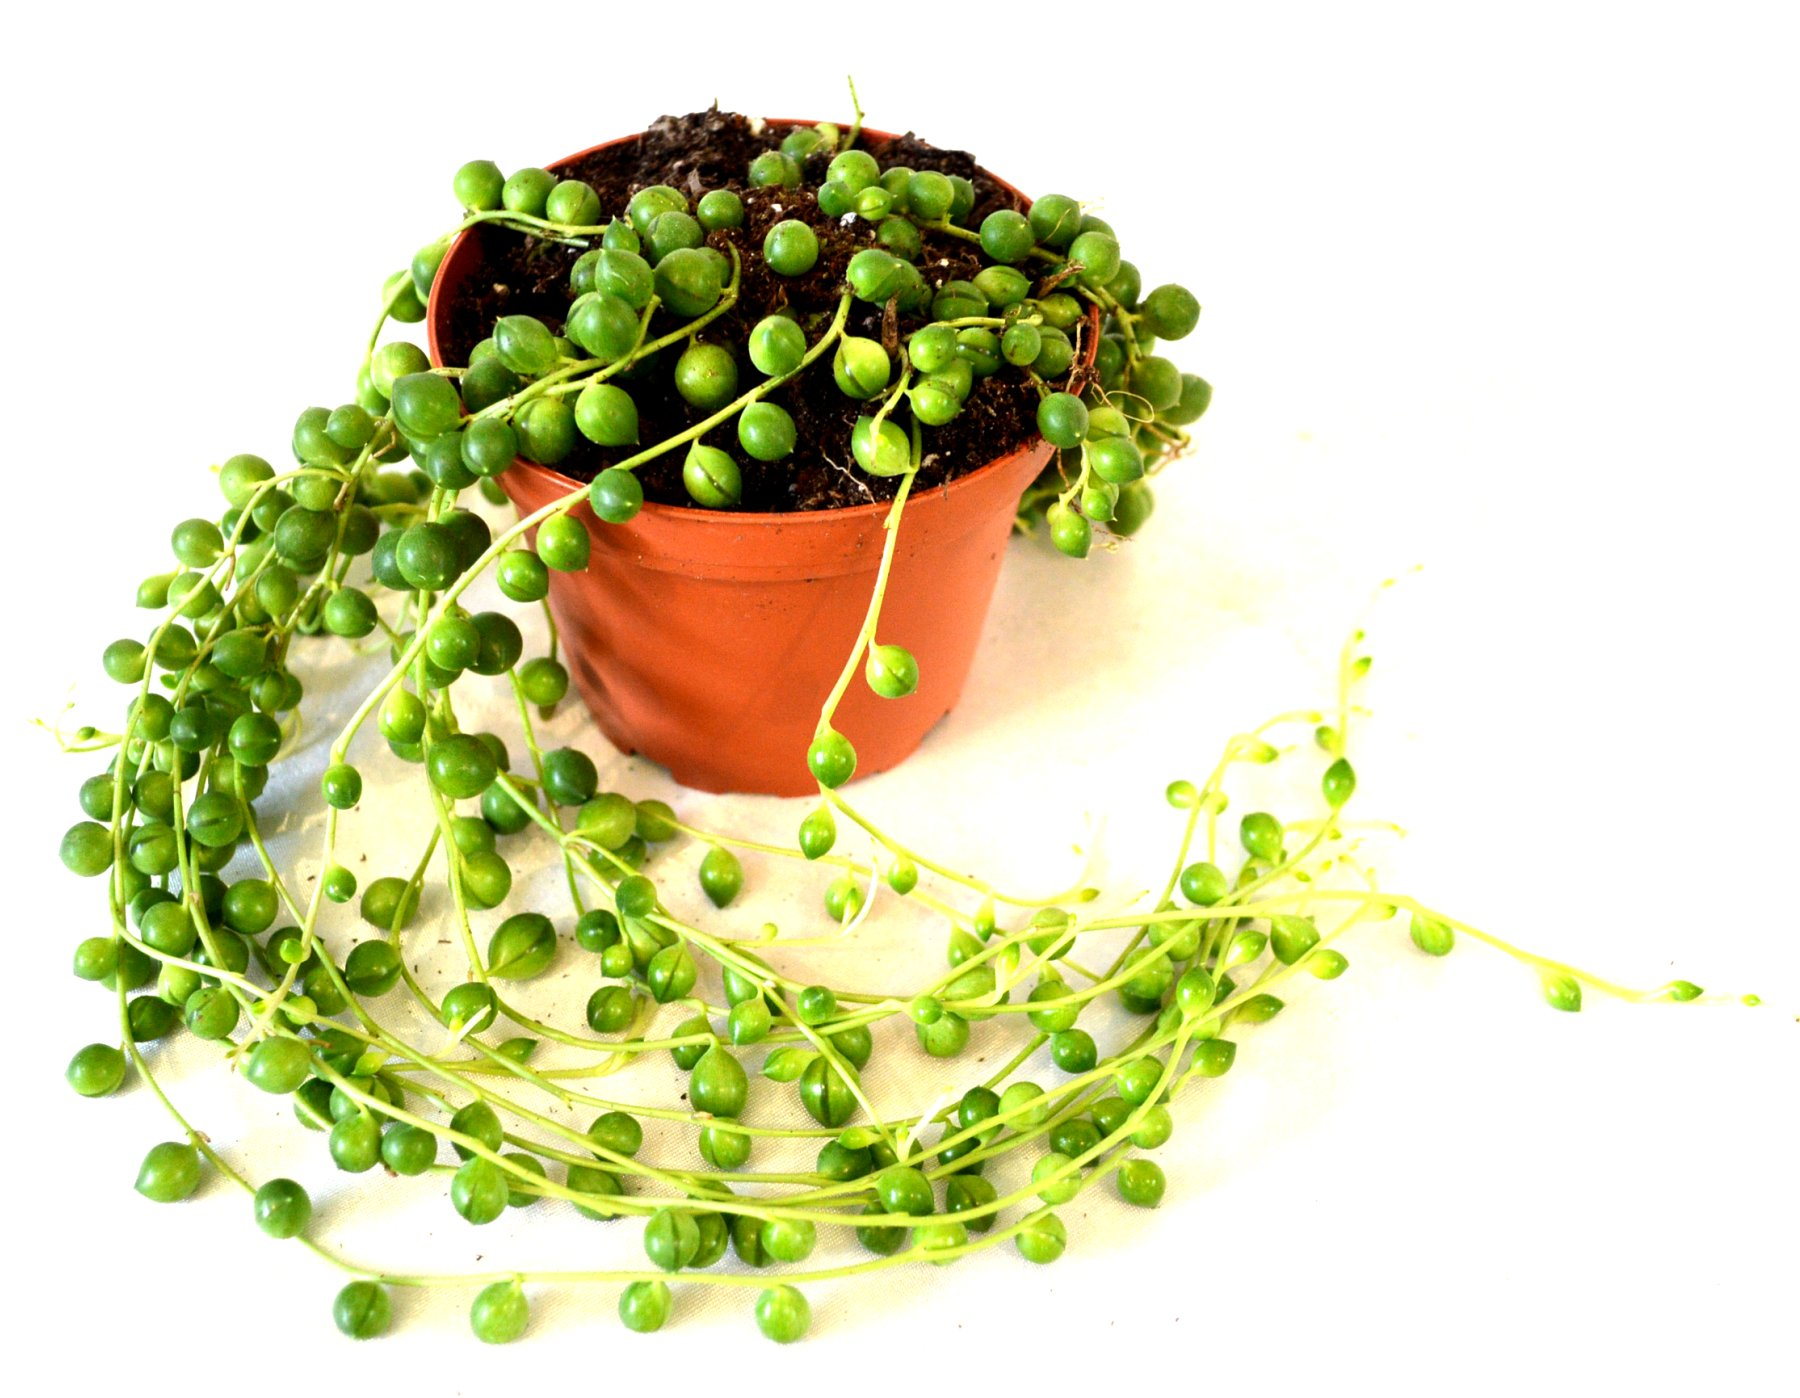 9Greenbox - String of Pearls, Senecio rowleyanus - 4'' Pot